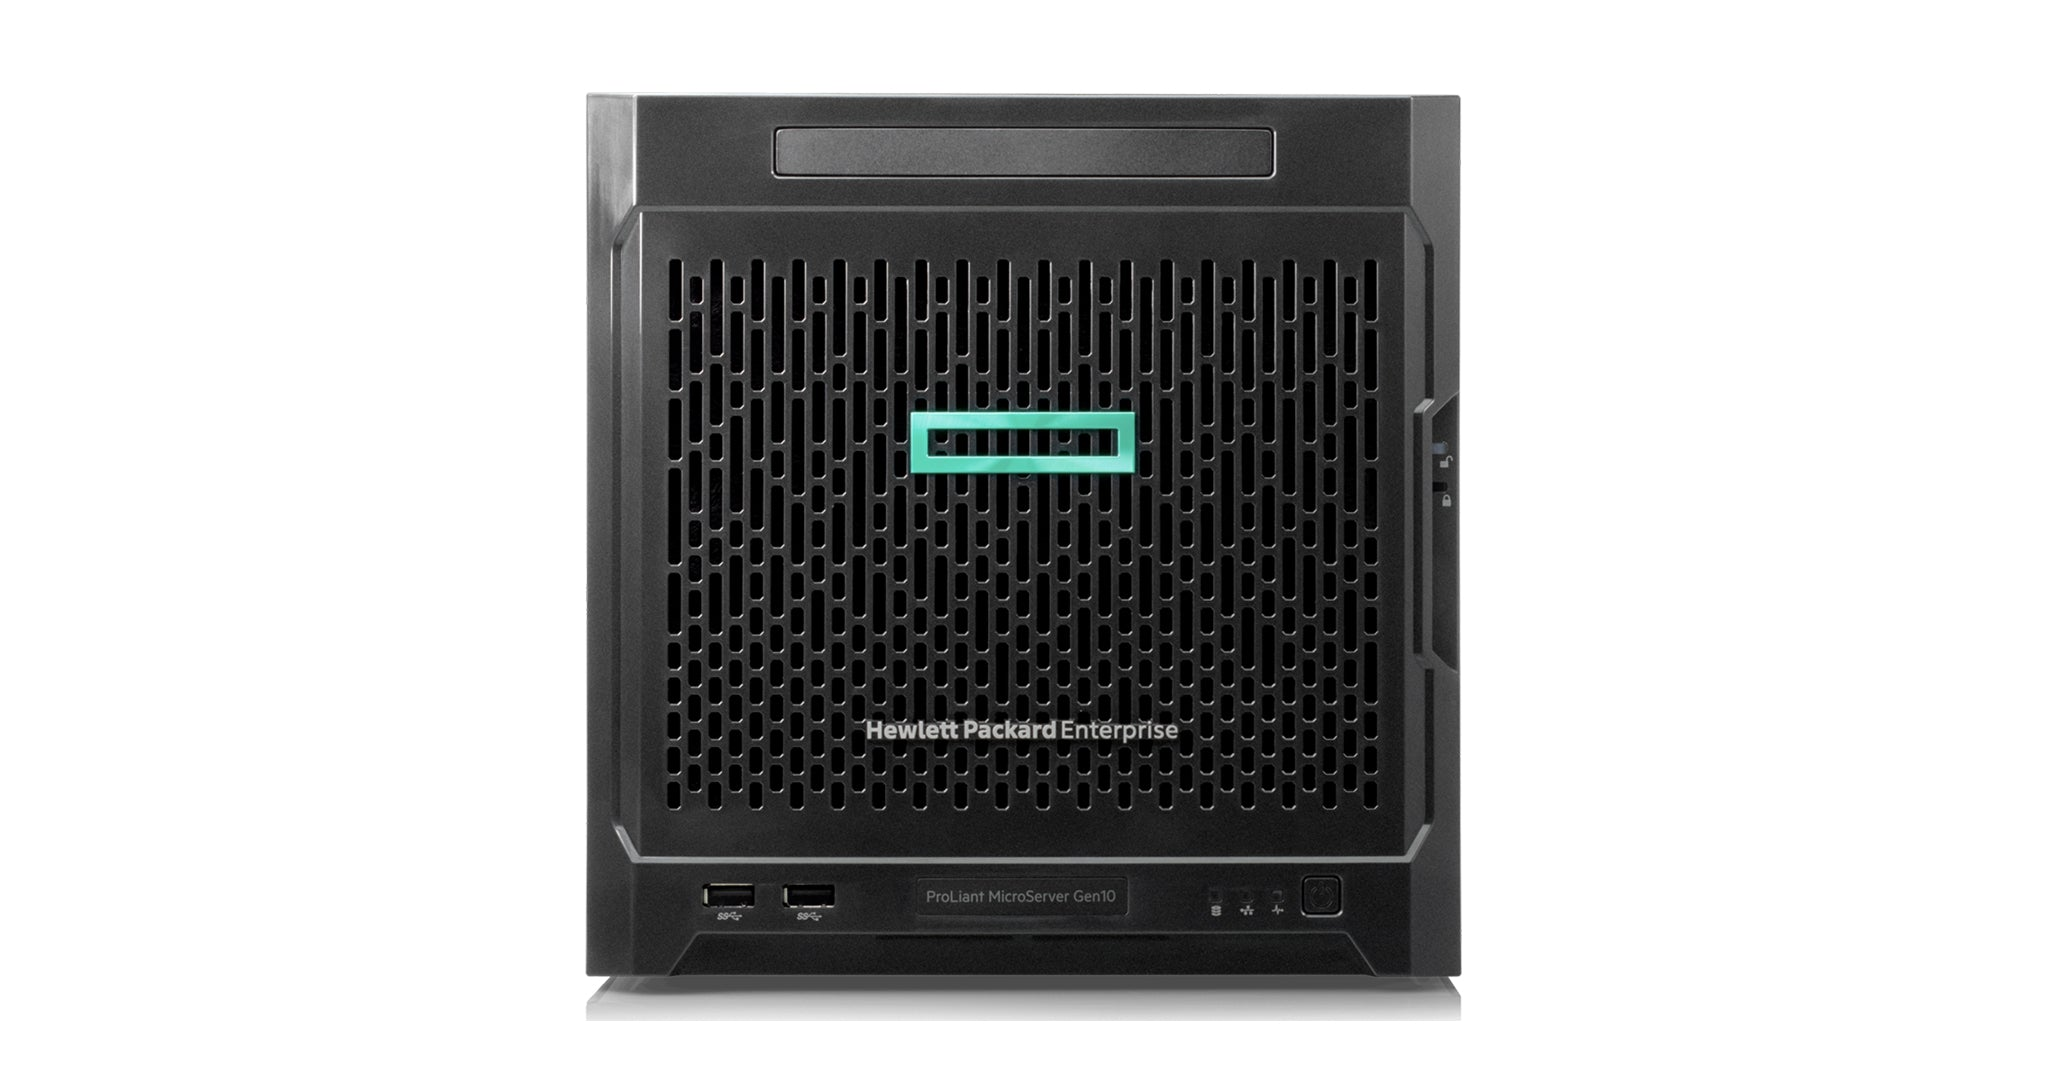 Unboxing Video of HPE ProLiant MicroServer Gen10